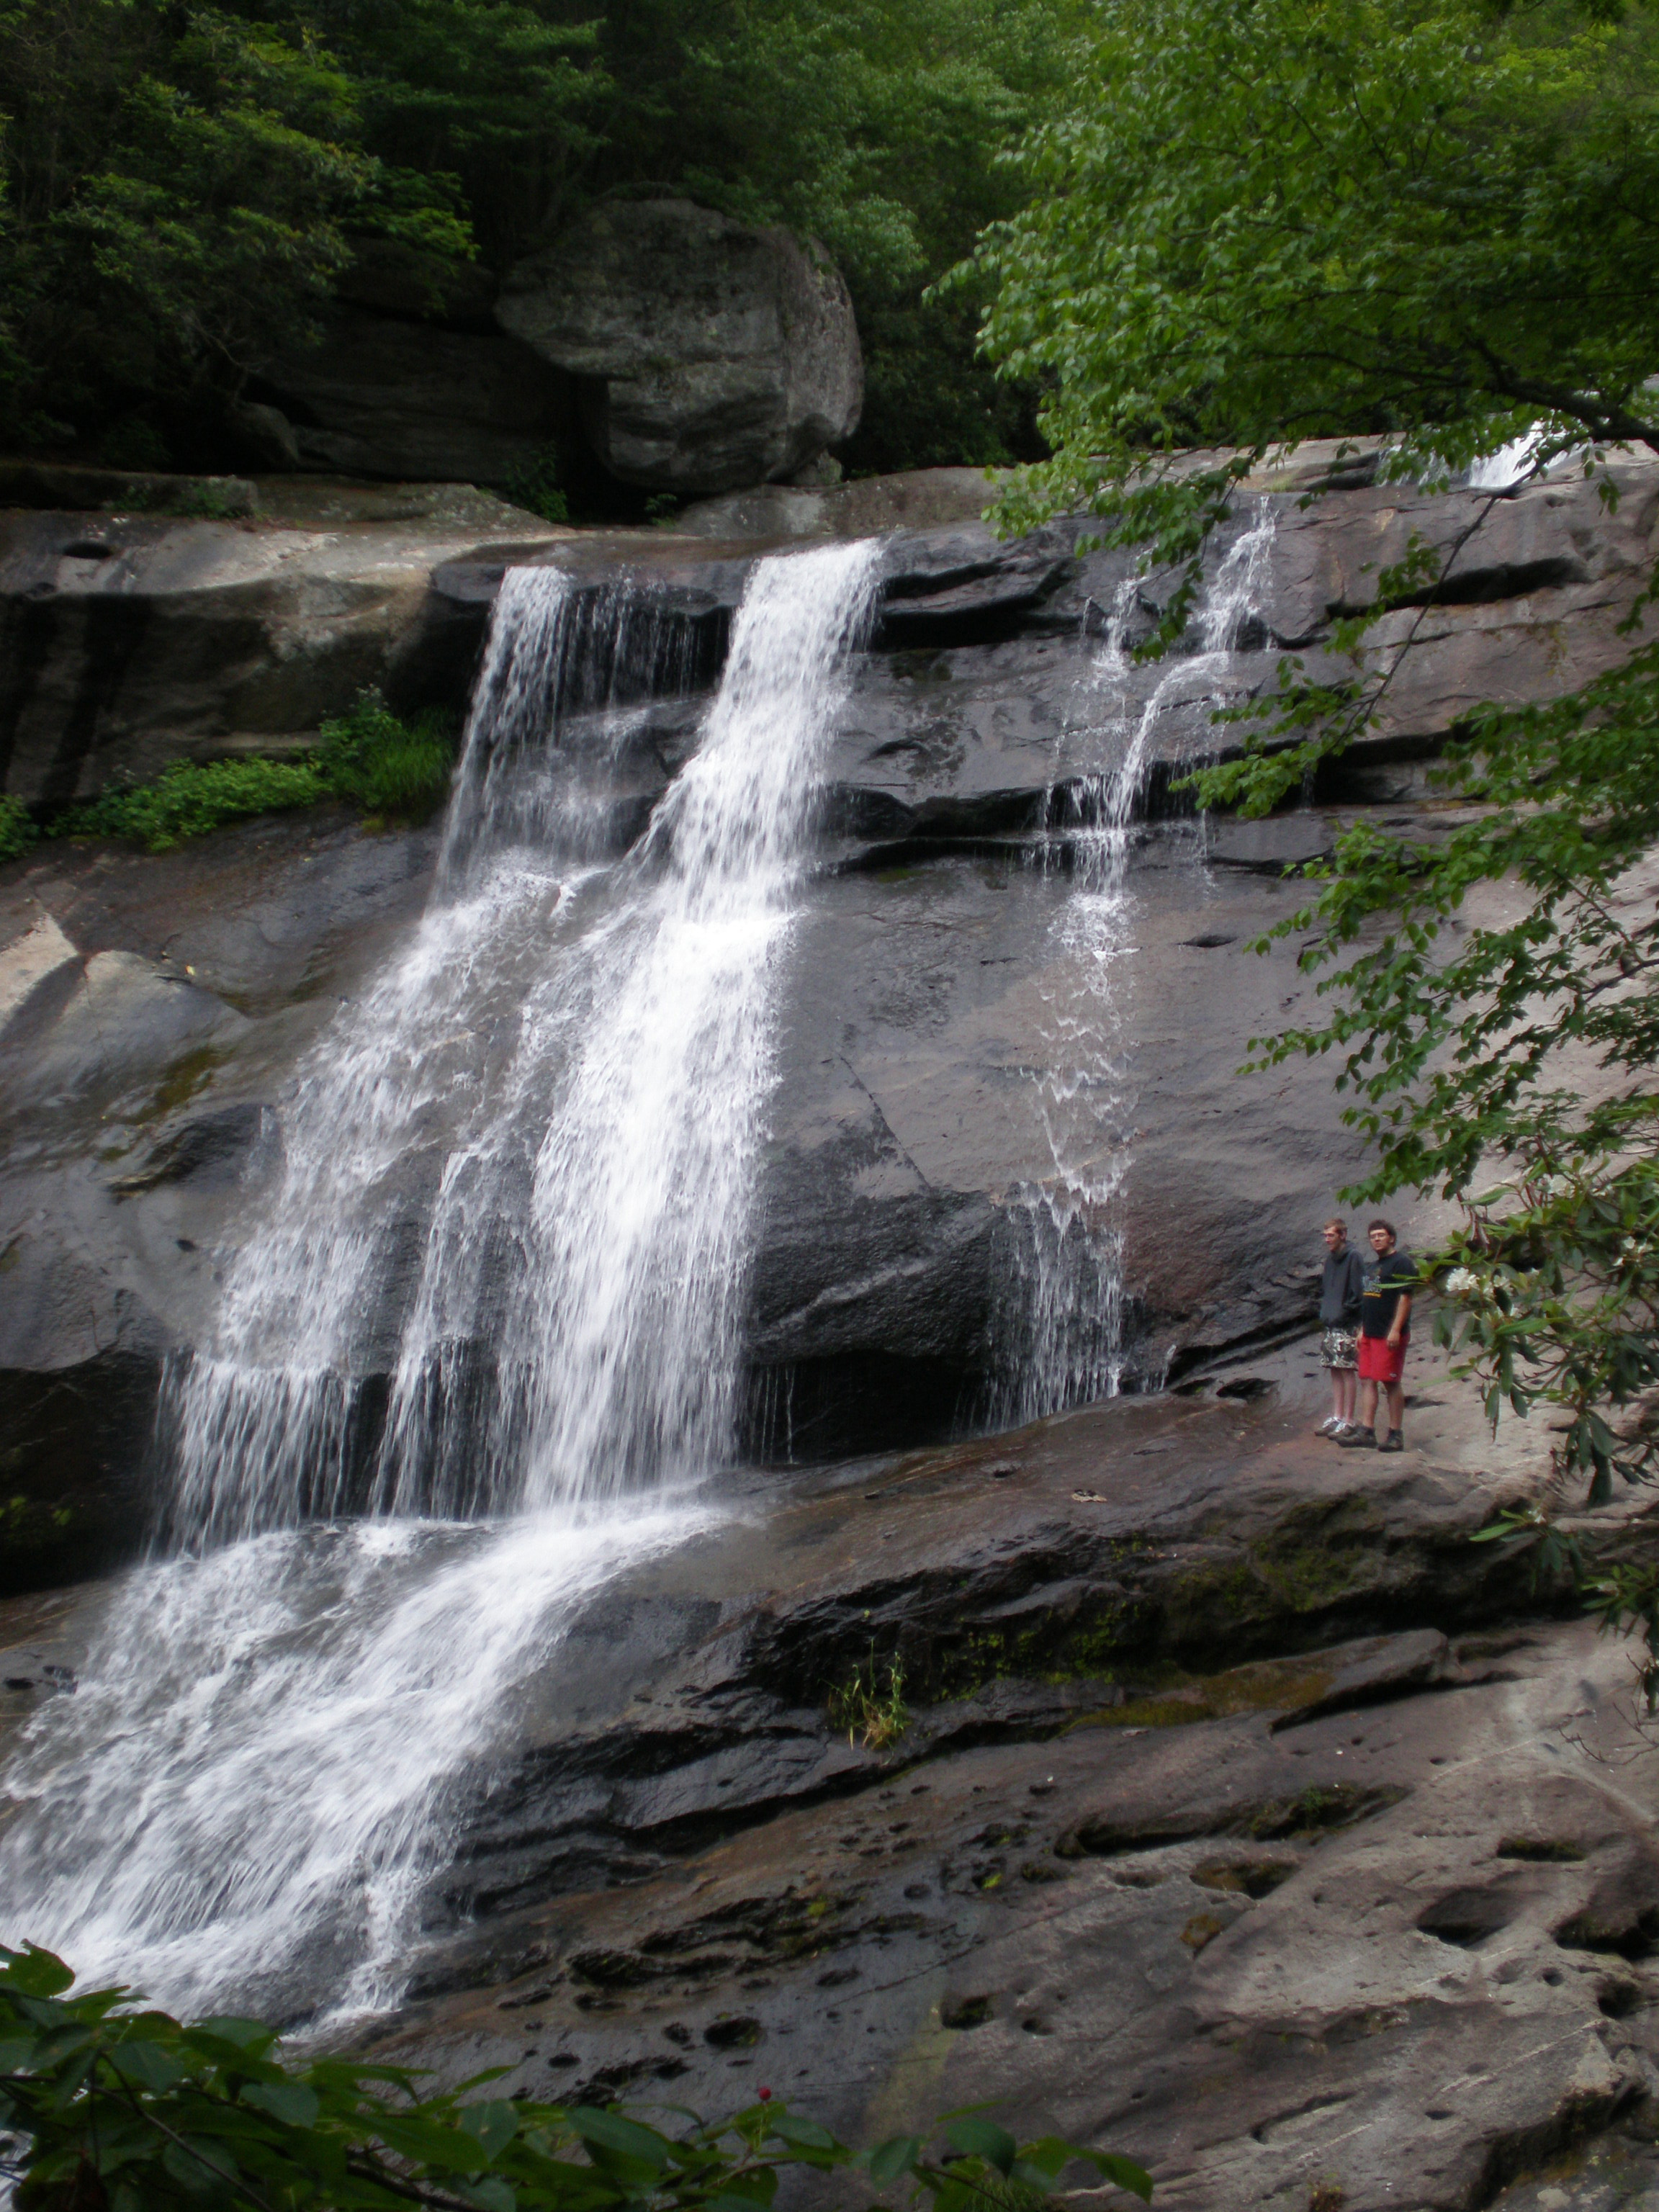 Waterfall near Blowing Rock, NC